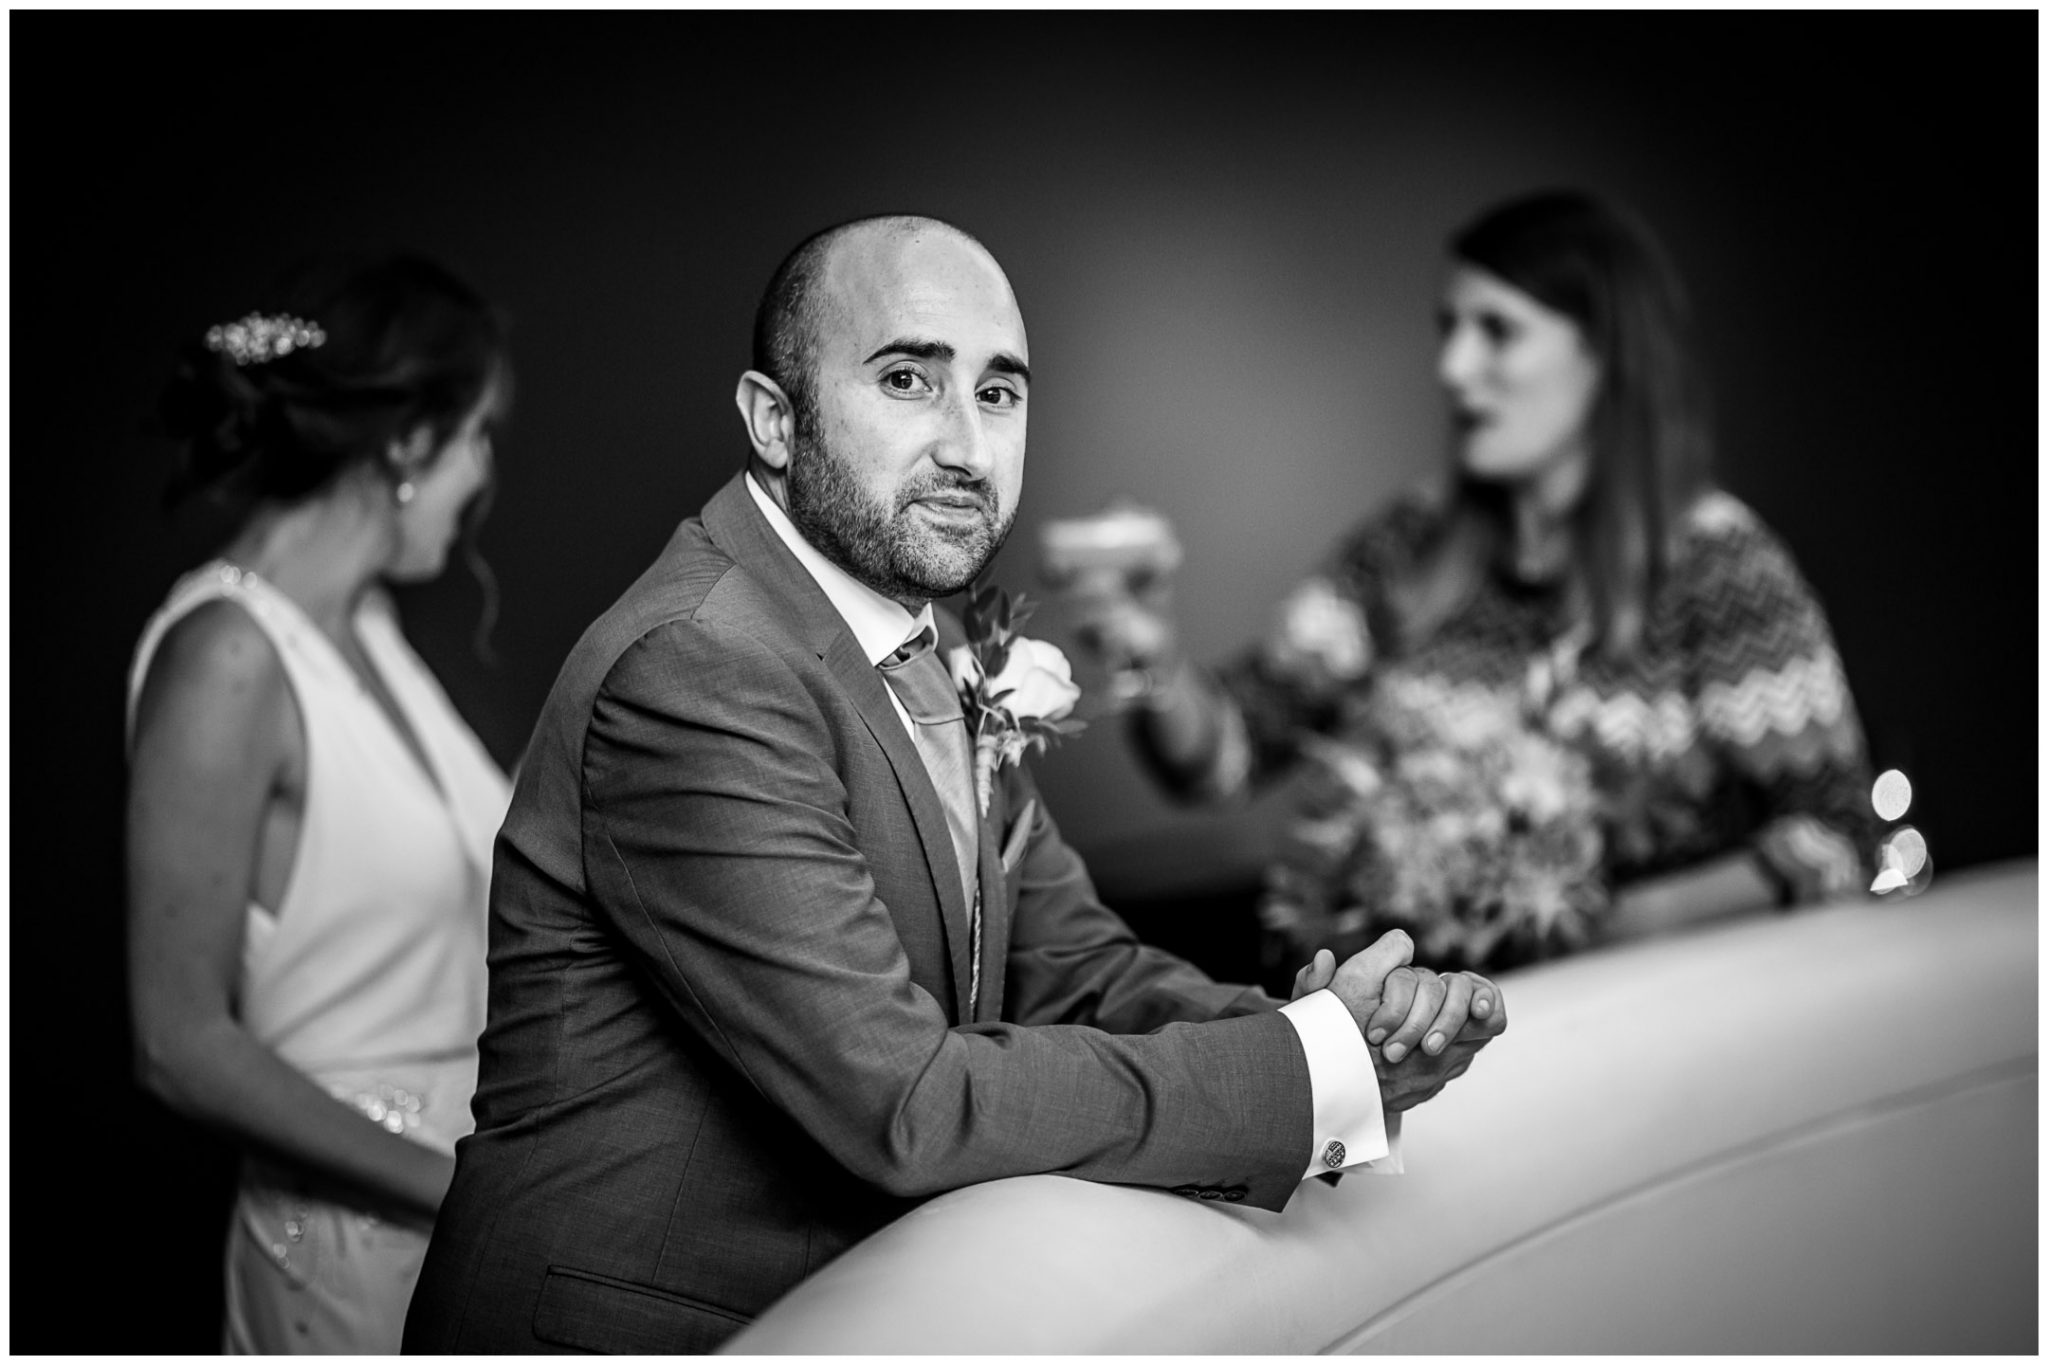 Black and white portrait of groom during drinks reception